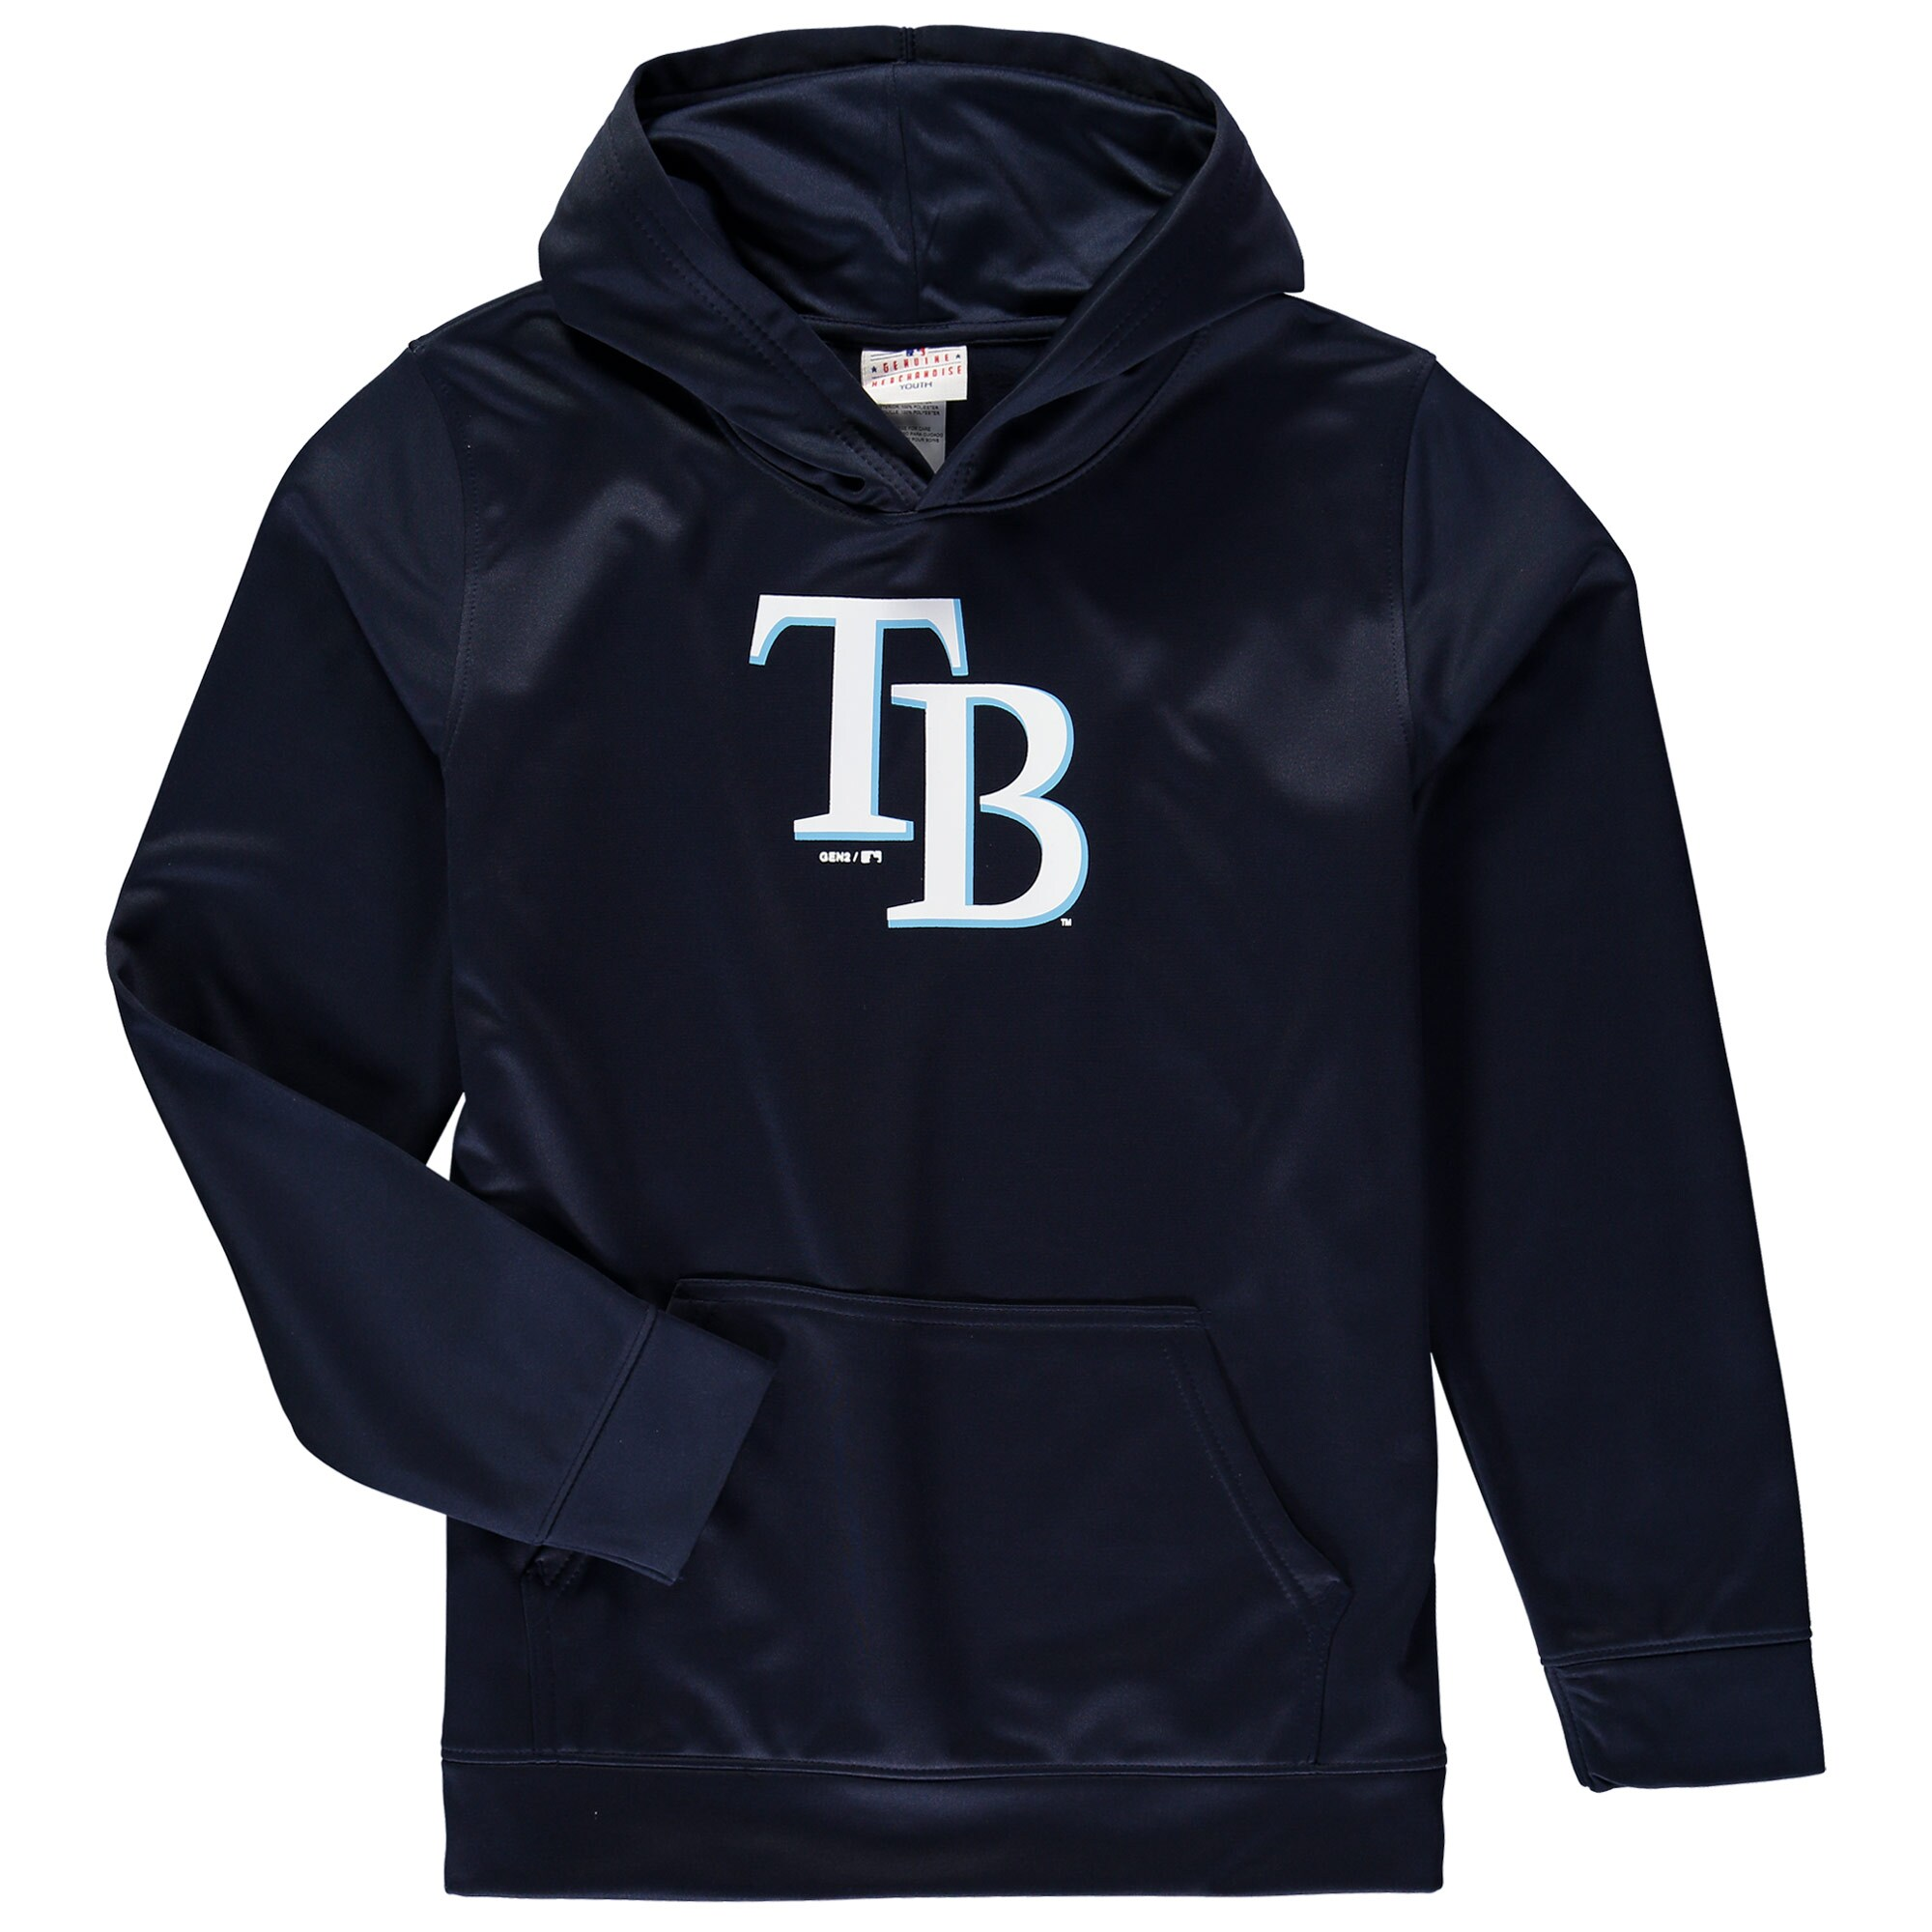 Tampa Bay Rays Youth Team Logo Fleece Pullover Hoodie - Navy